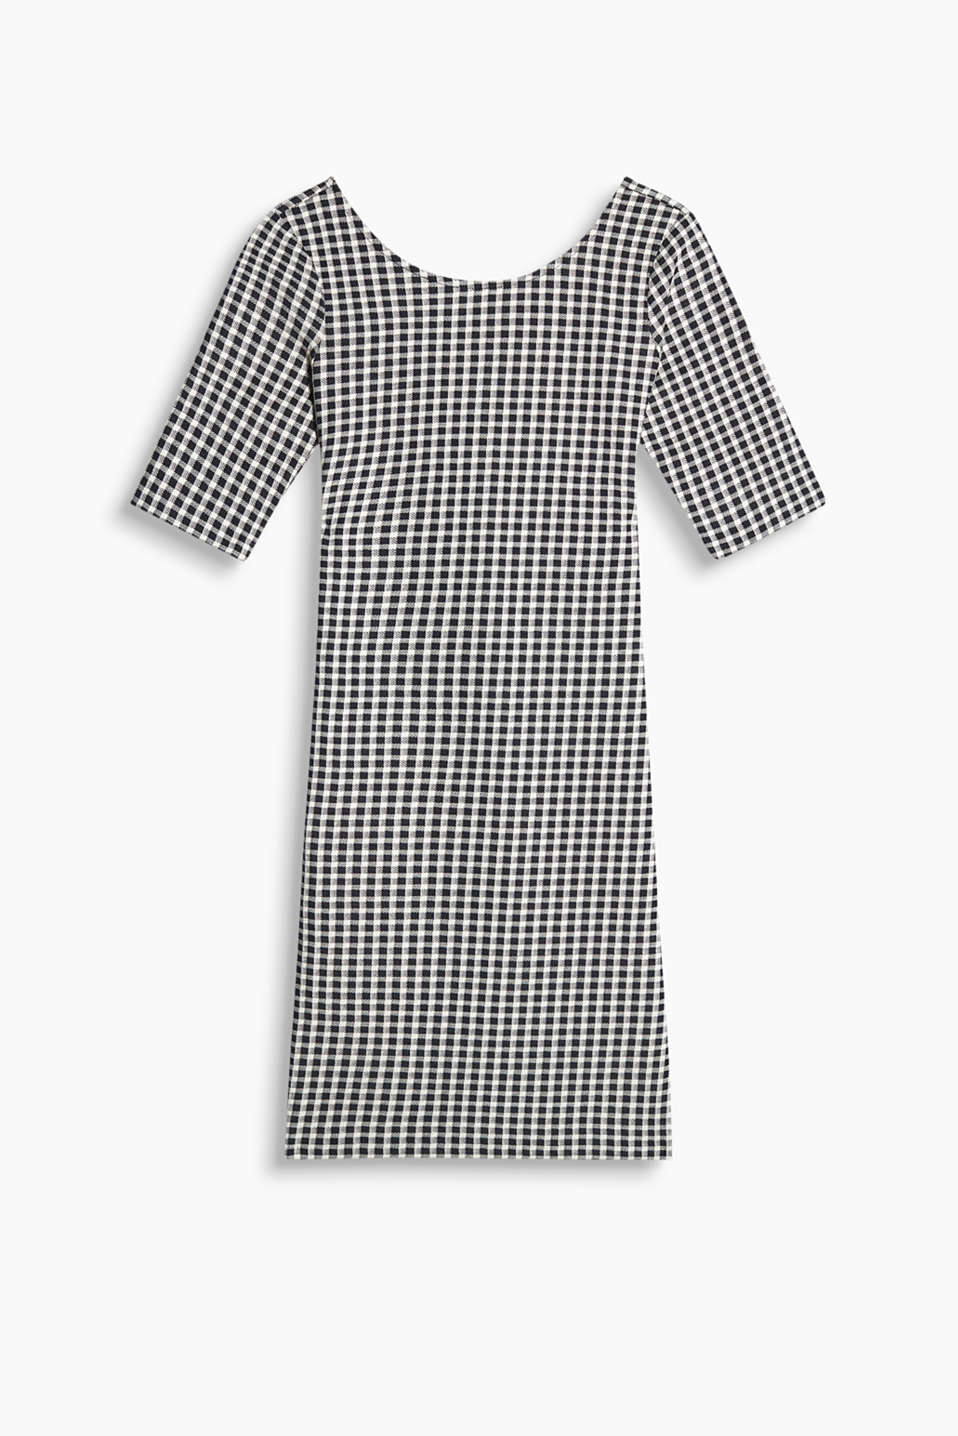 Figure-flattering stretch jersey dress with a modern gingham pattern, 3/4-length sleeves and deep round necklines